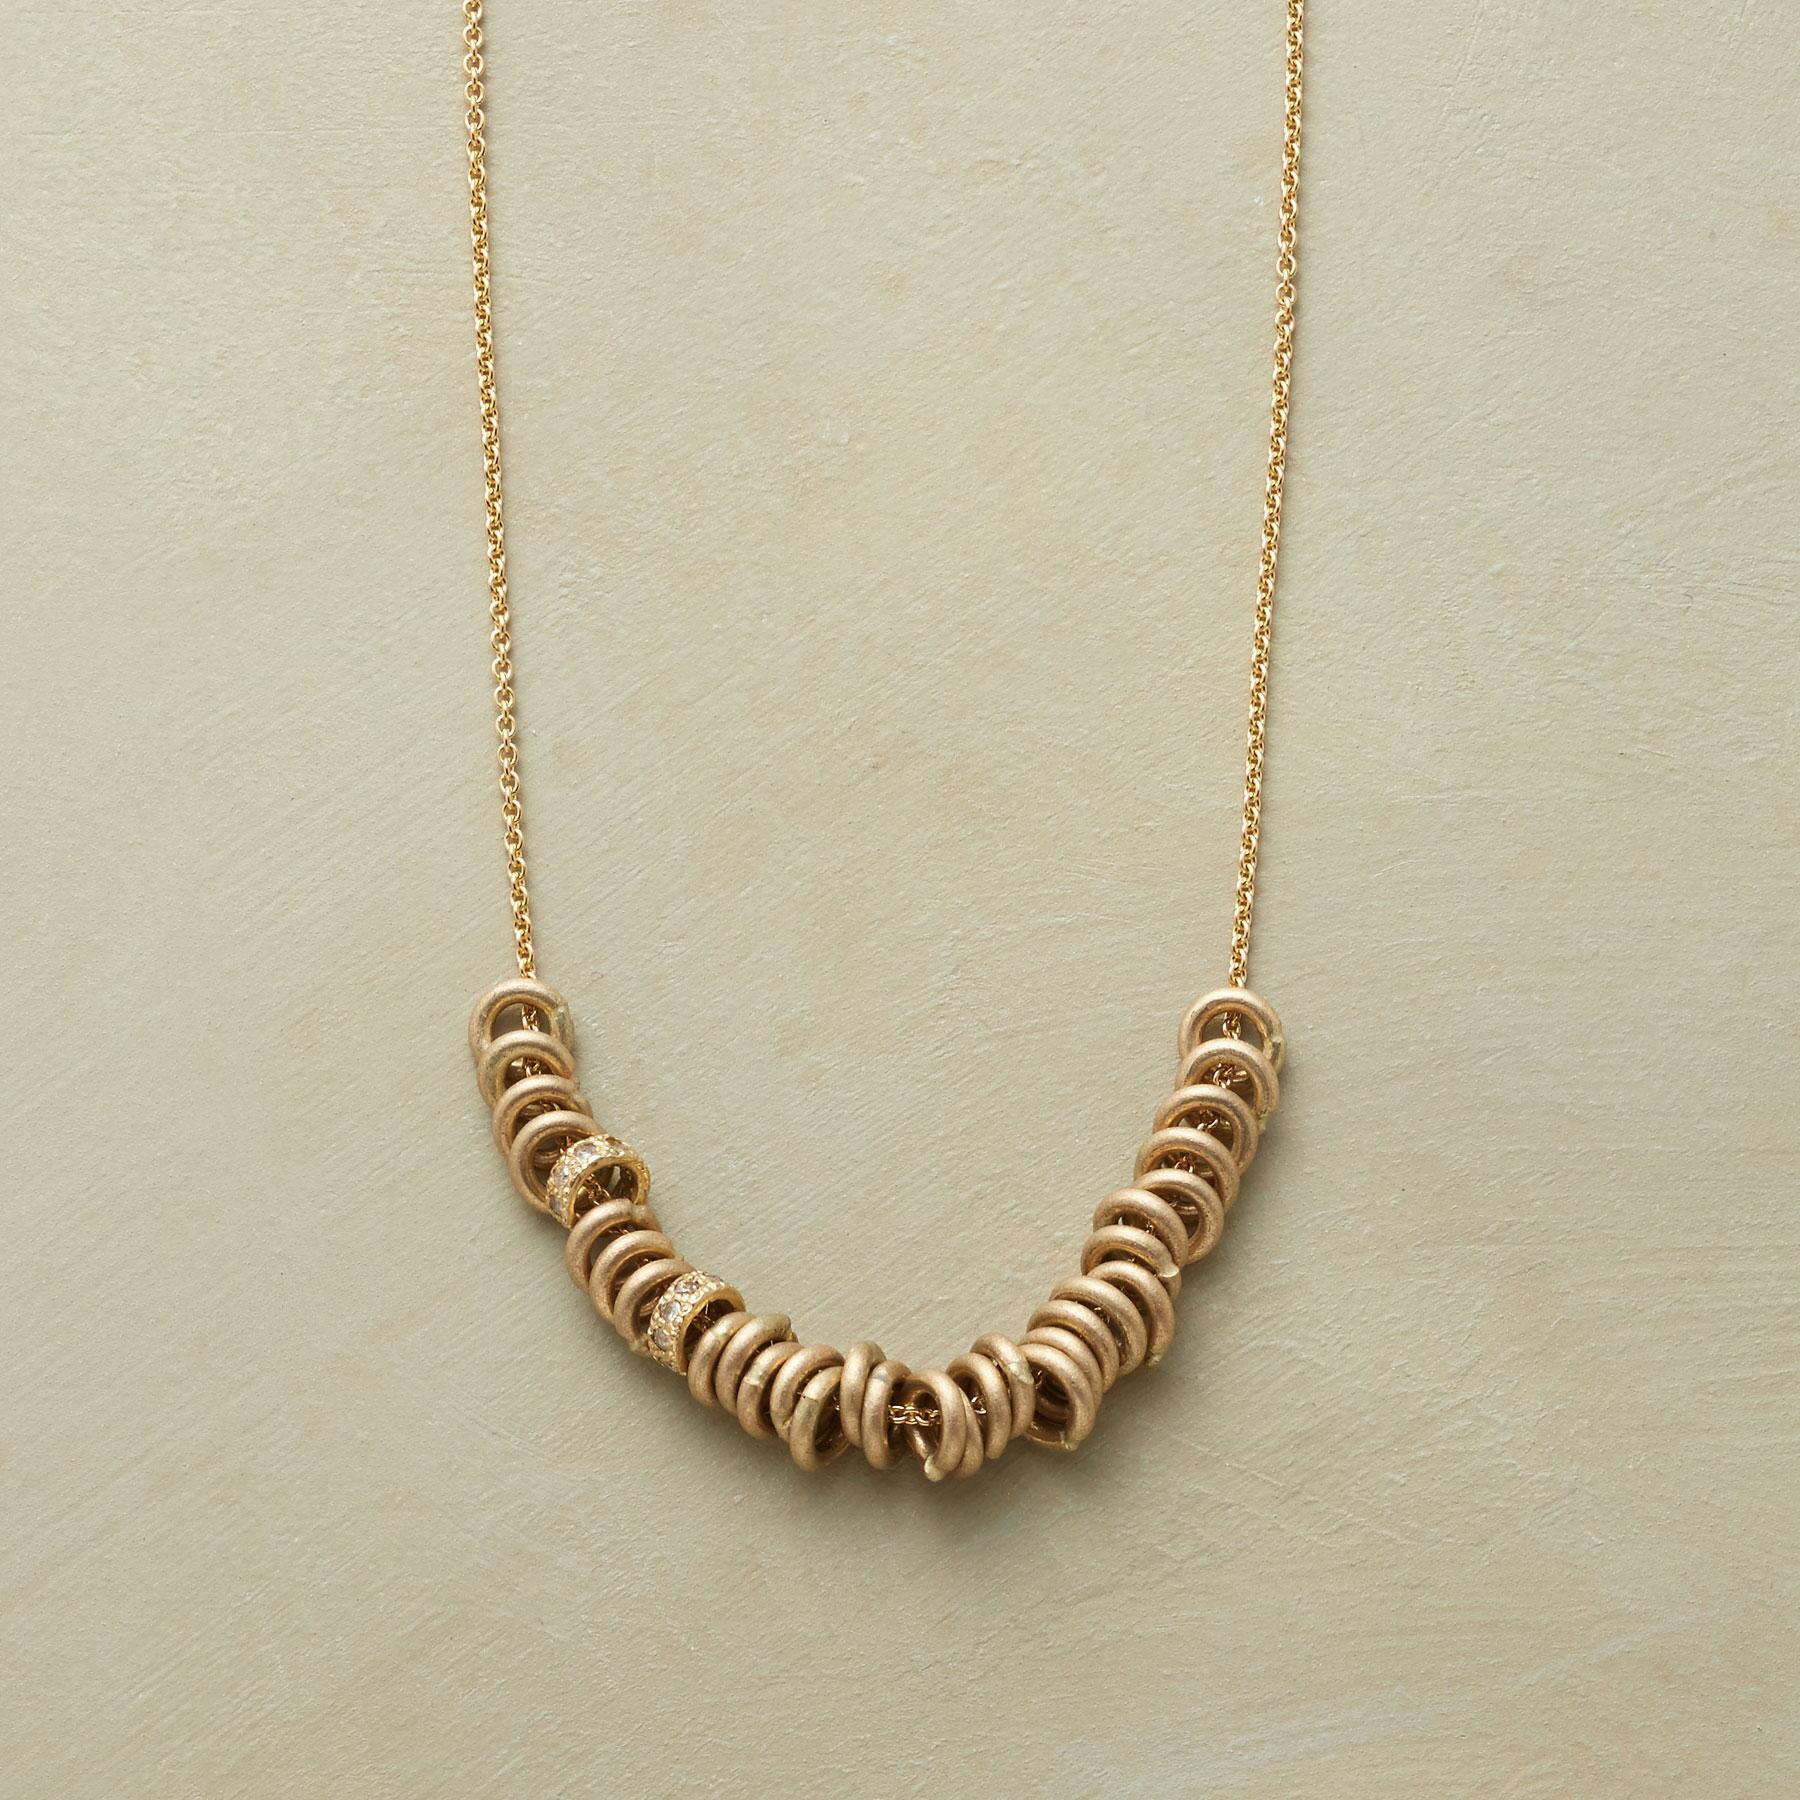 SECOND LOOK NECKLACE: View 1